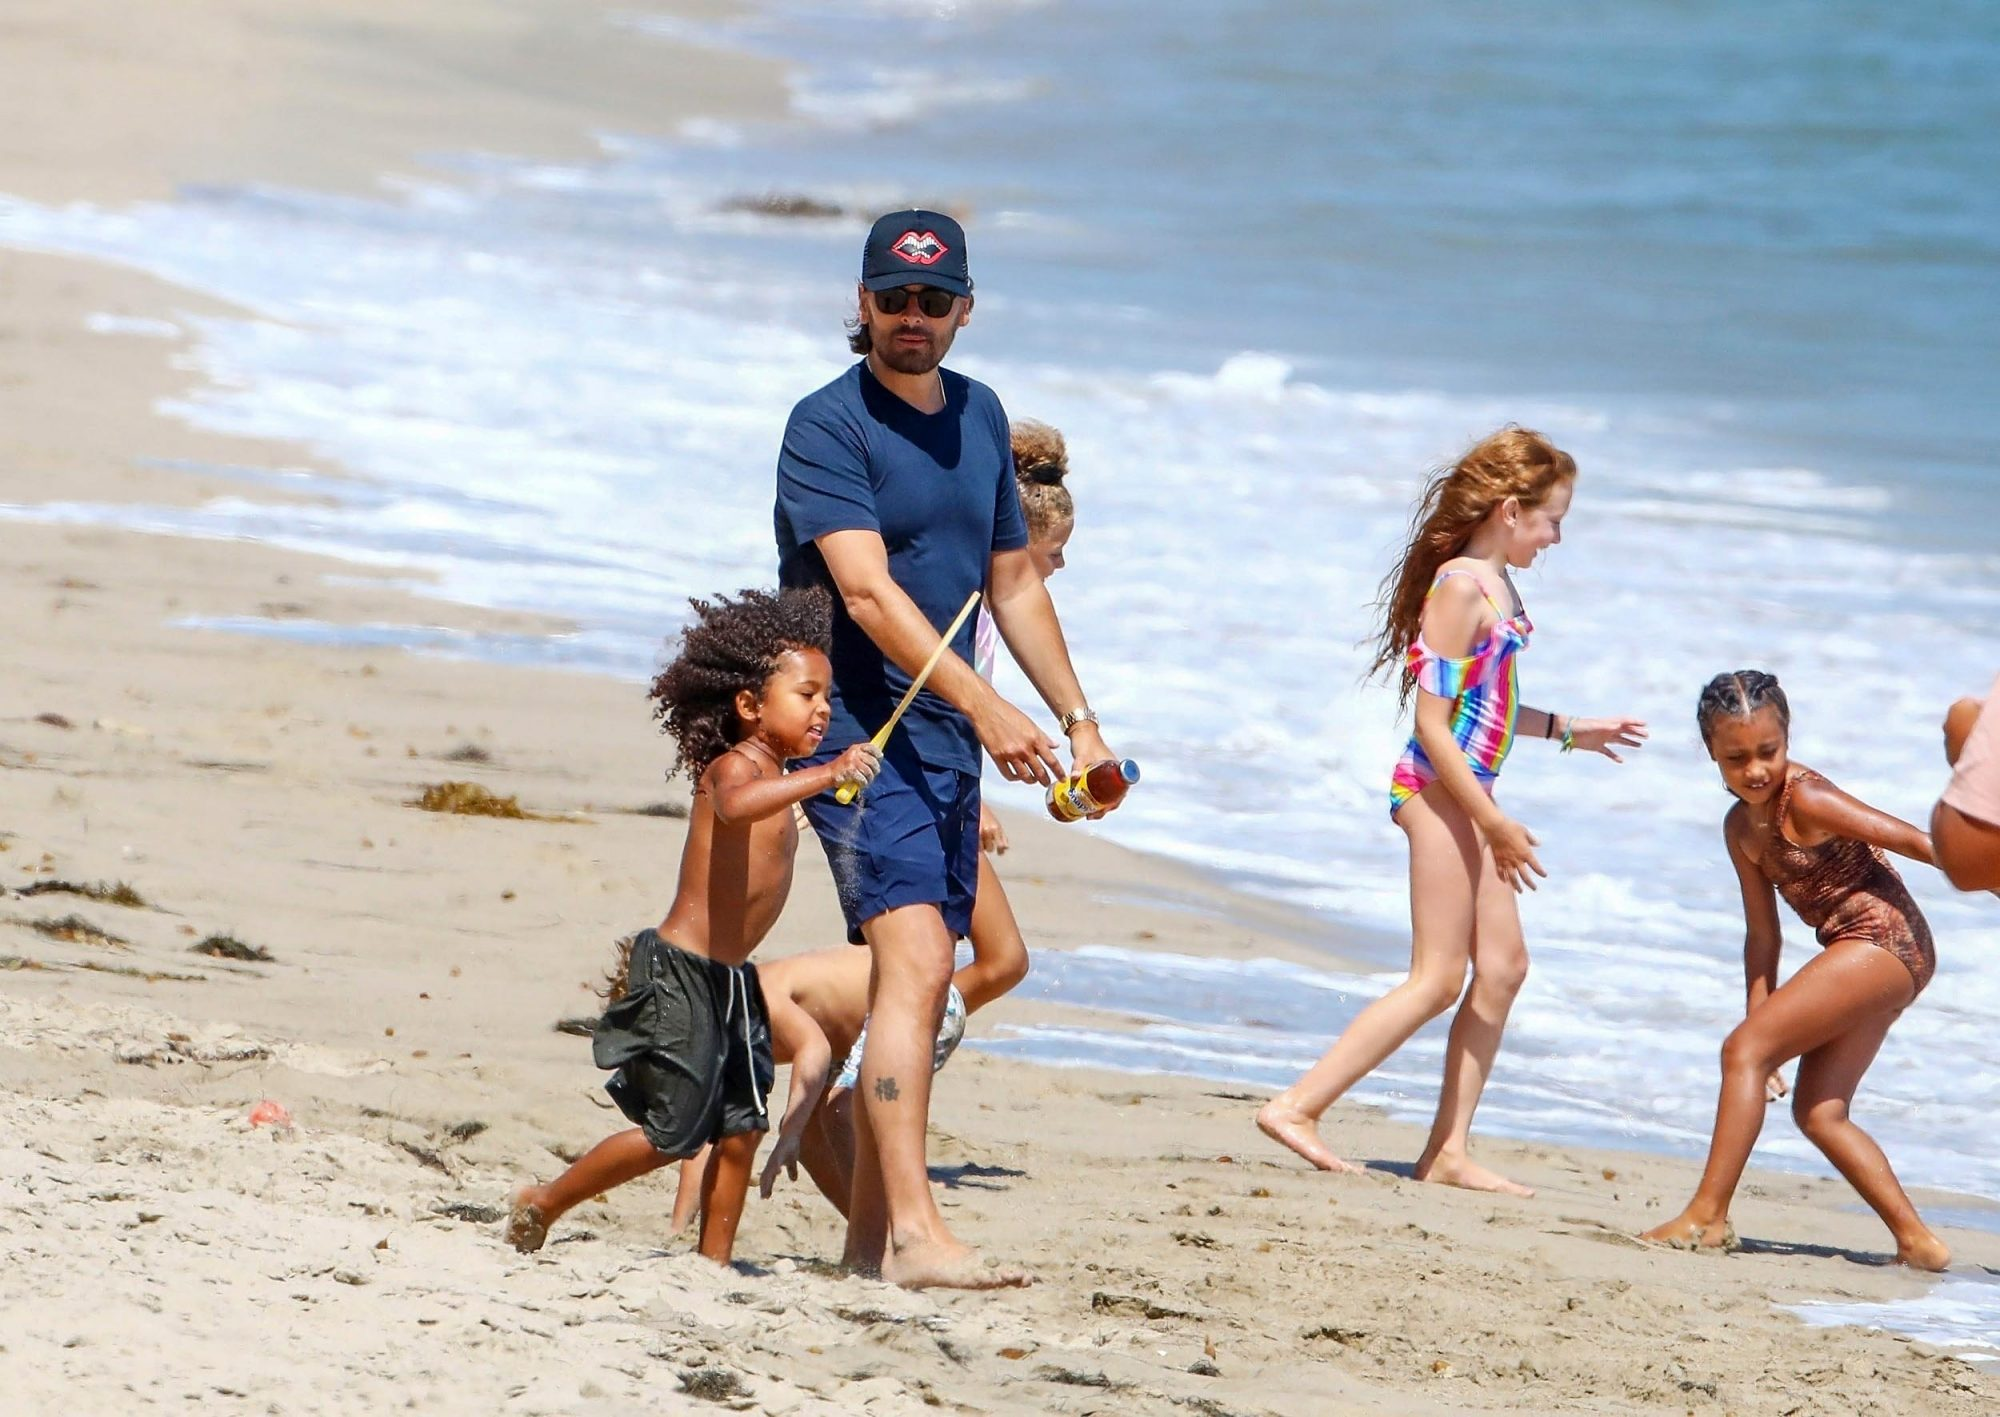 Malibu, CA - Scott Disick enjoys a day at the beach with his kids, Kim and Kanye's kids, and TikTok star Addison Rae in Malibu. Scott watches over the children as they play near the ocean as Kourtney Kardashian holds down the fort from the beach house balcony.